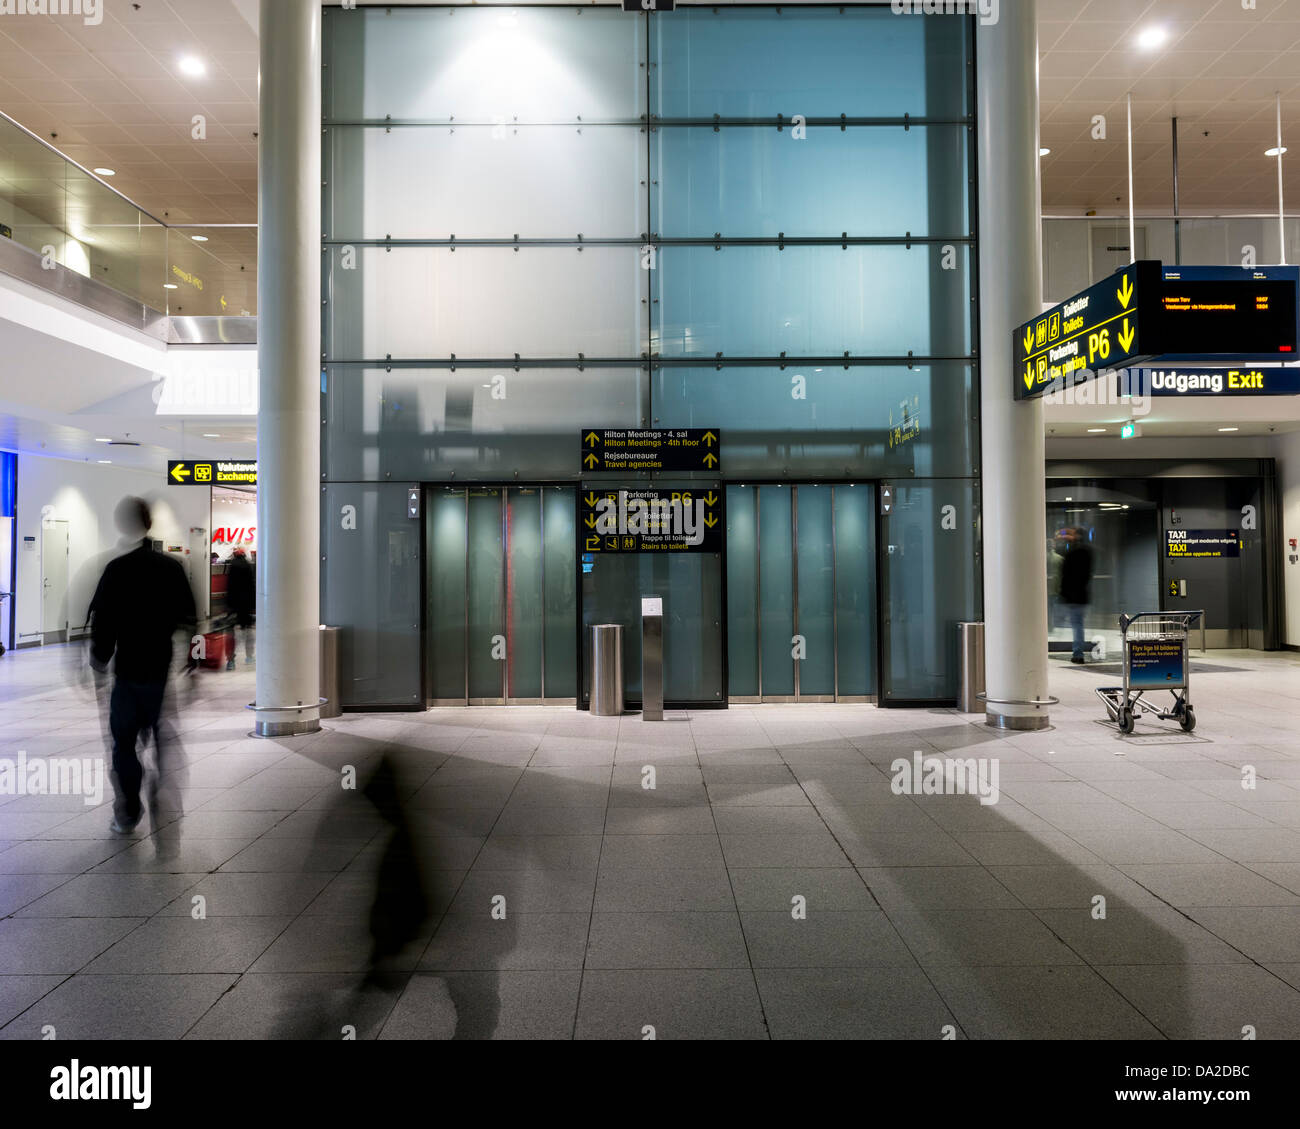 Copenhagen Airport, Copenhagen, Denmark. Architect: Vilhem Lauritzen, 1998. Elevators, Terminal 3. Stock Photo